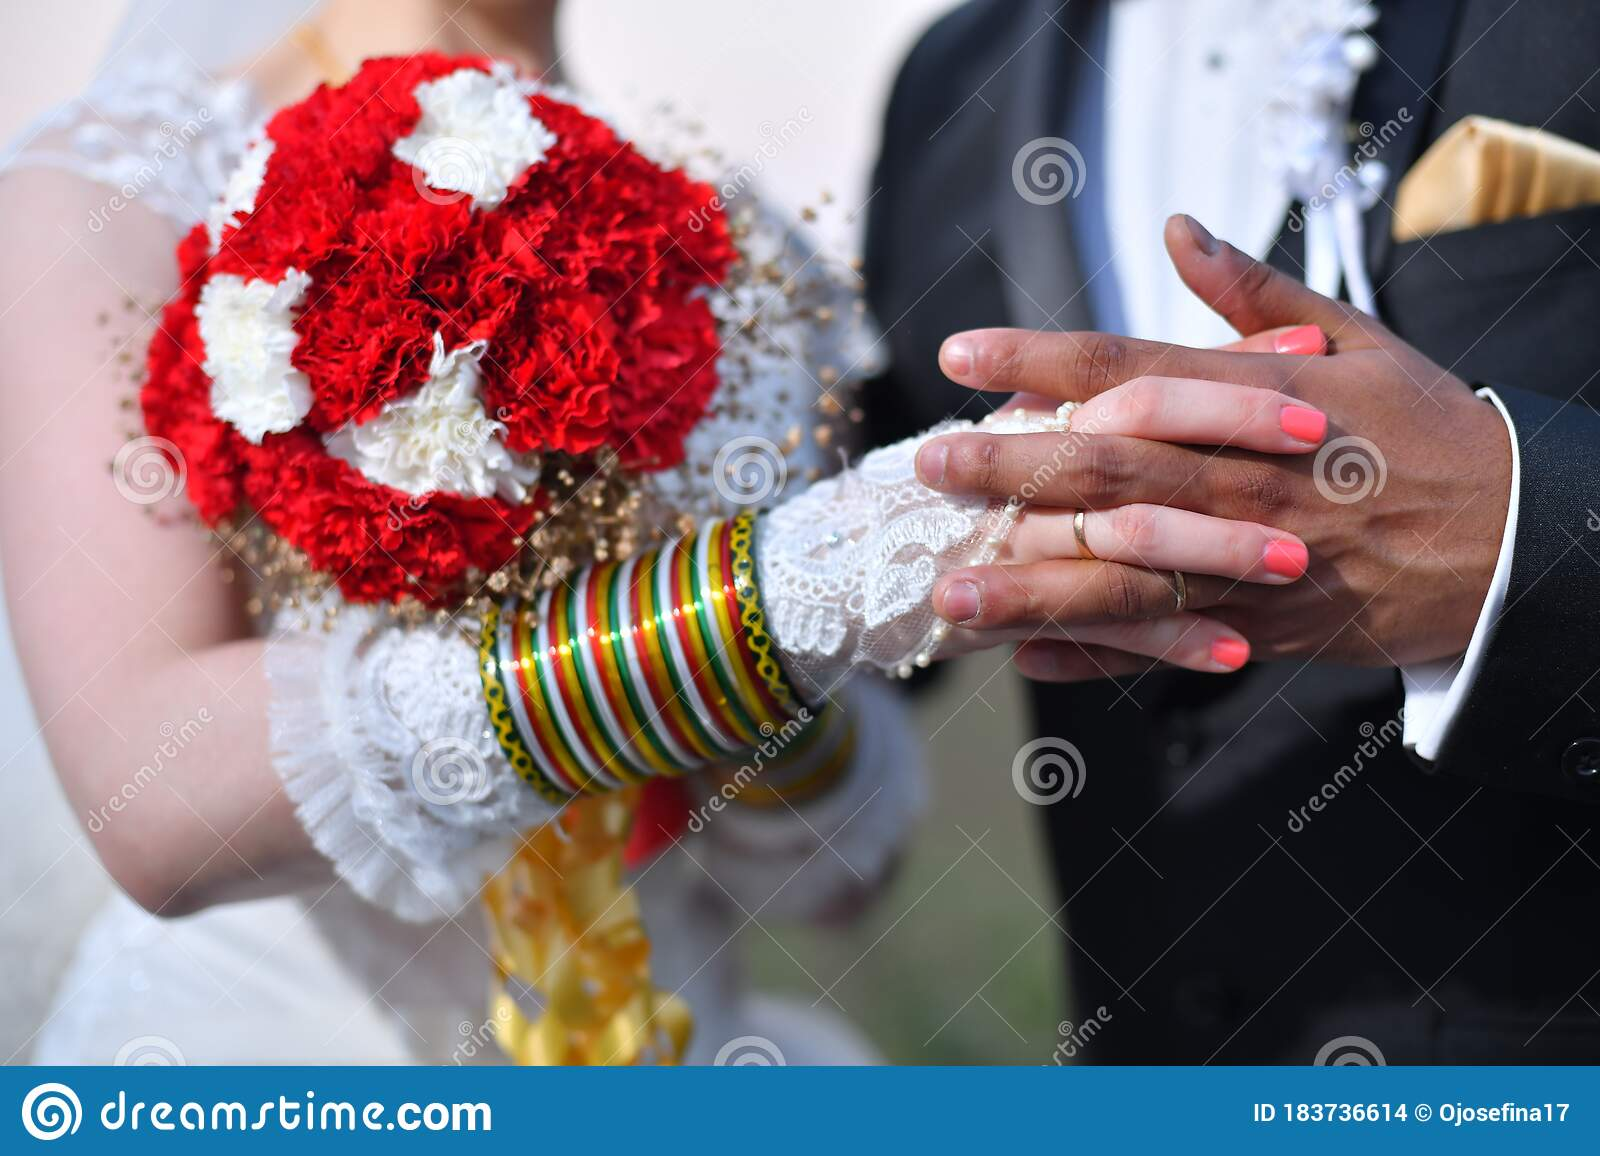 https://thumbs.dreamstime.com/z/joined-hands-newly-married-couple-wedding-ceremony-international-marriage-groom-black-suit-bride-white-dress-183736614.jpg